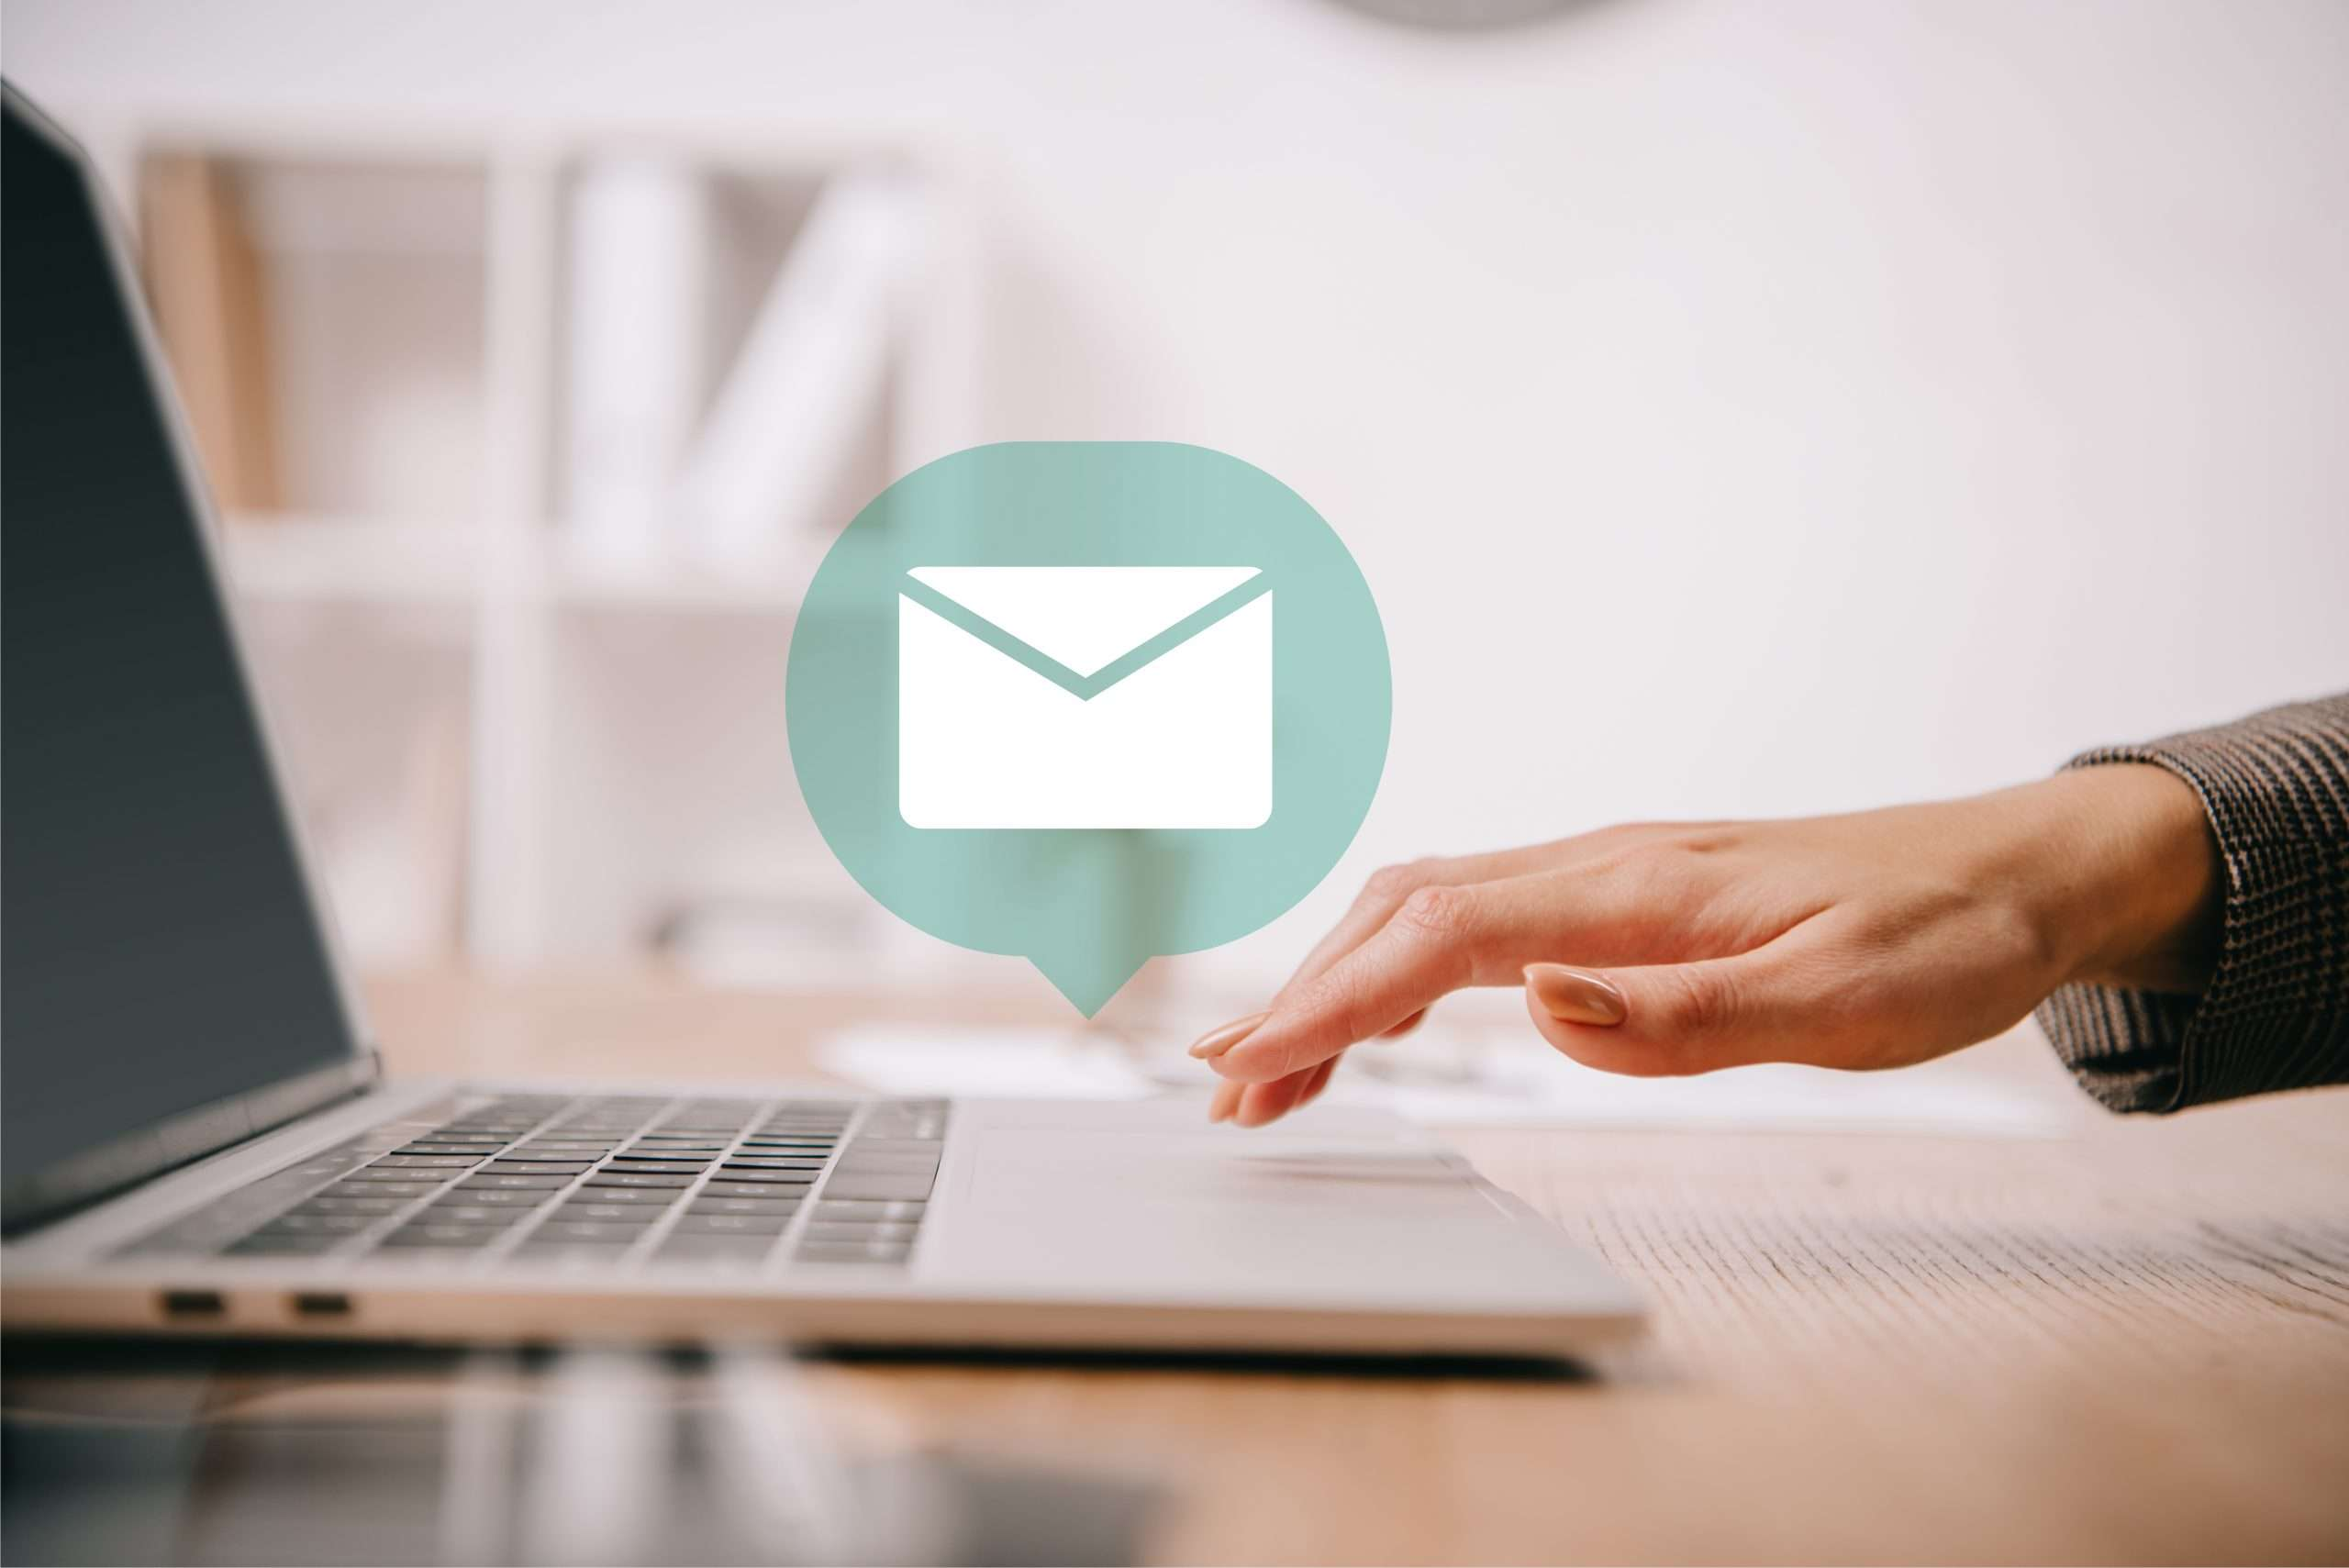 A business owner works with one of the popular email marketing services to deliver clean, captivating emails to her audience.